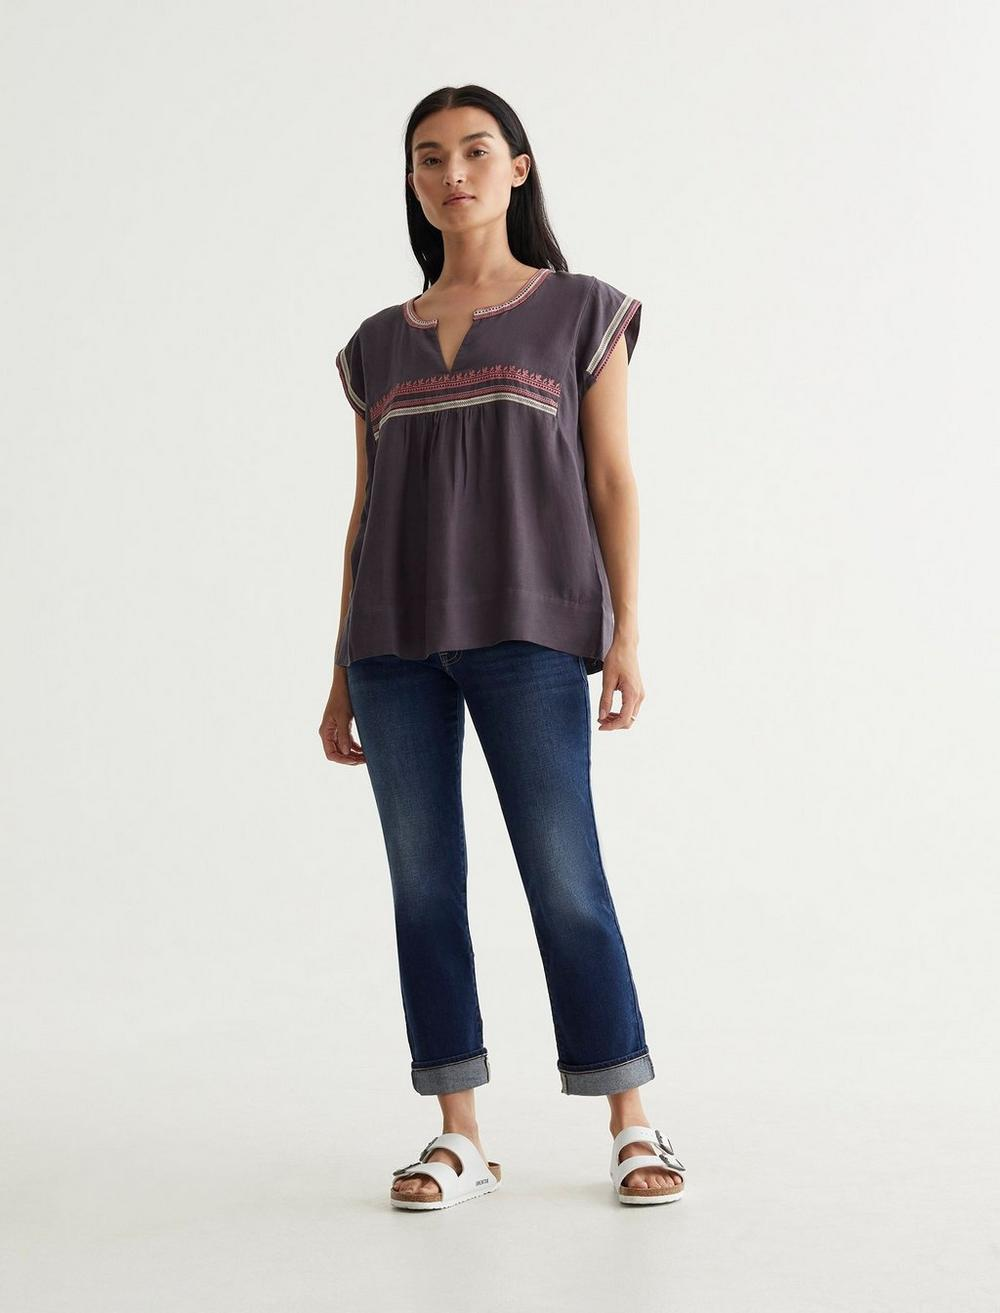 EMBROIDERED WOVEN TOP, image 2